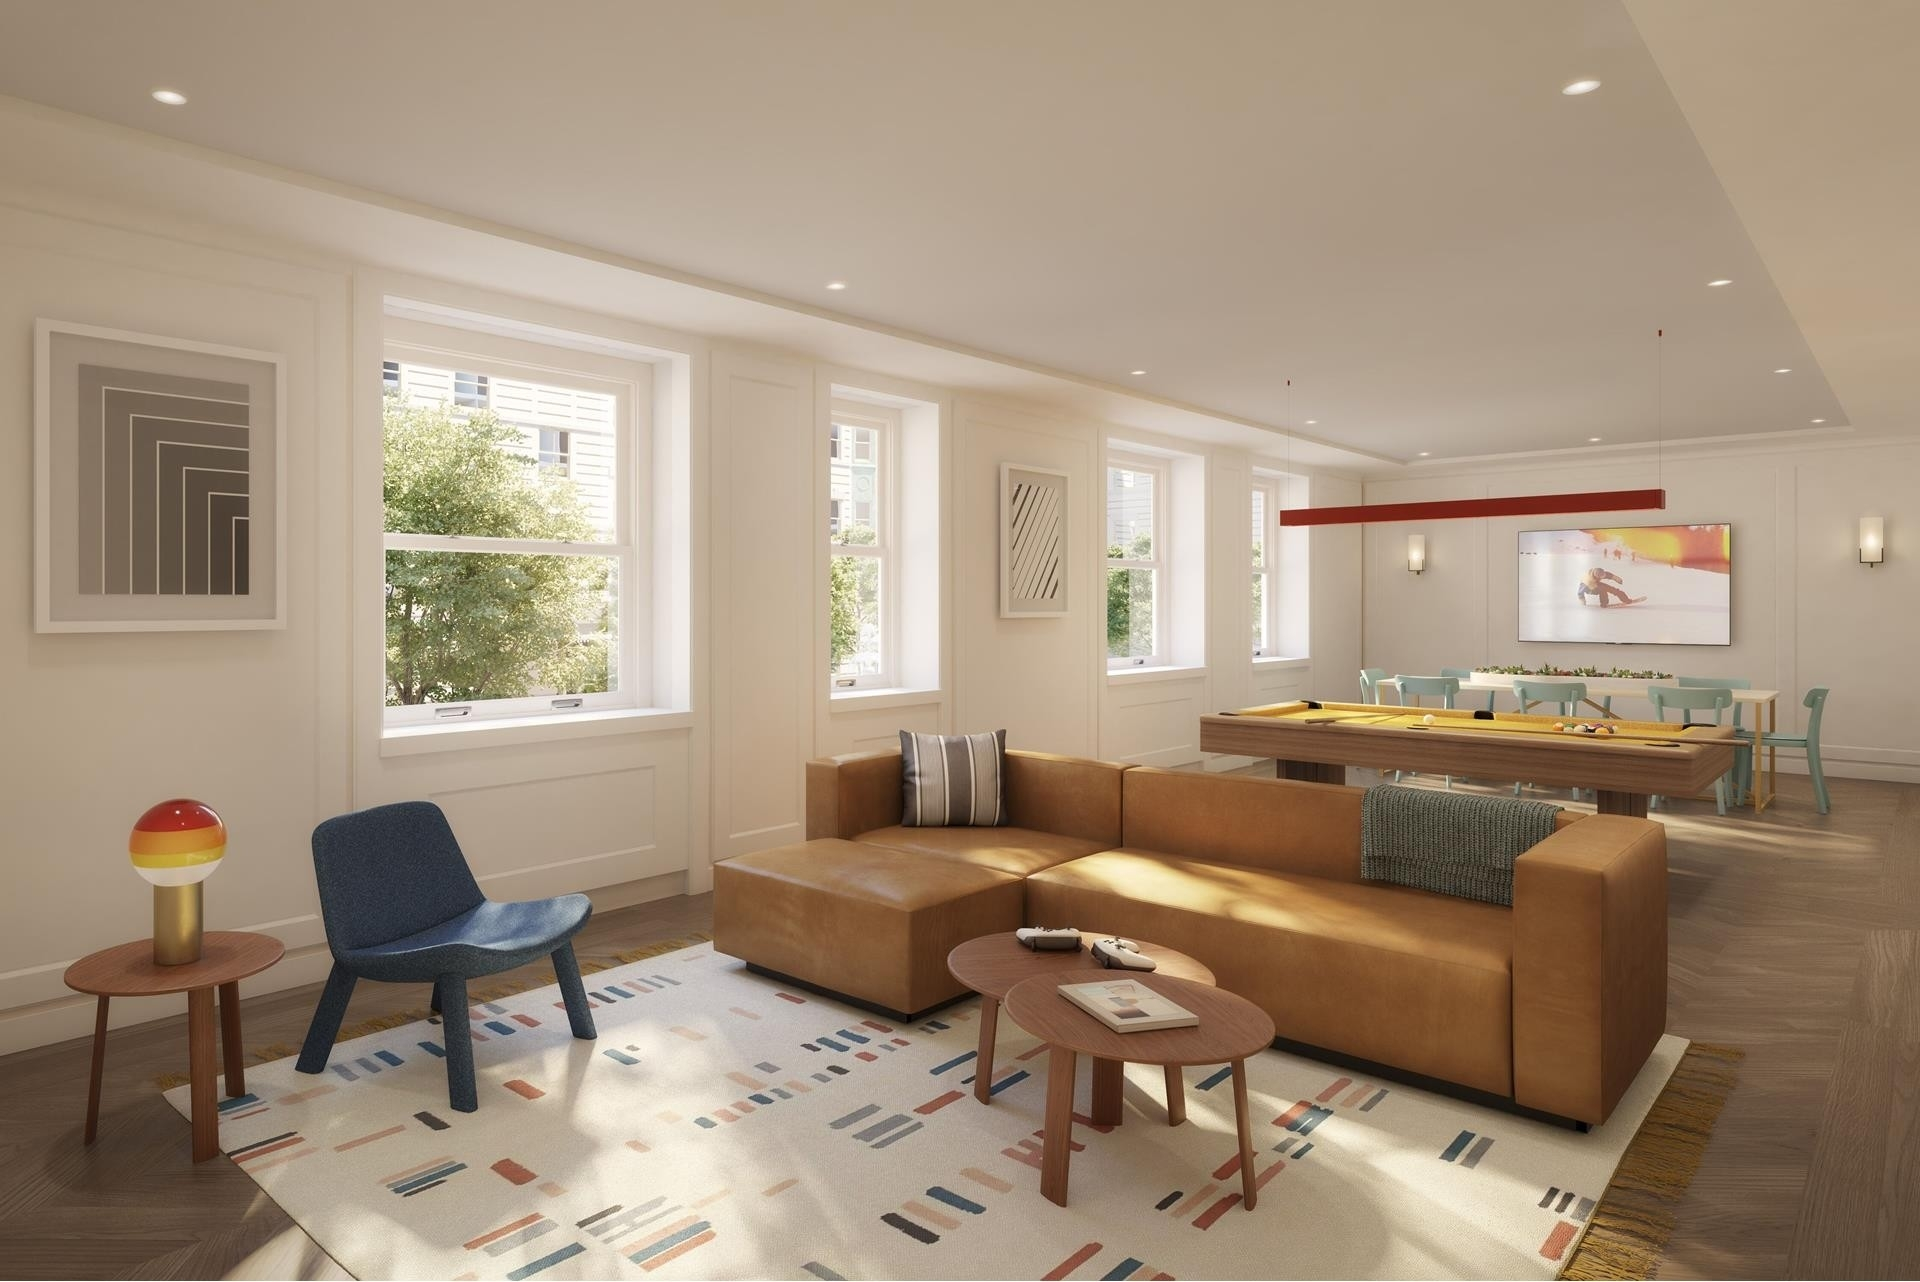 21. Condominiums for Sale at The Belnord, 225 W 86TH ST , 1012 Upper West Side, New York, NY 10024